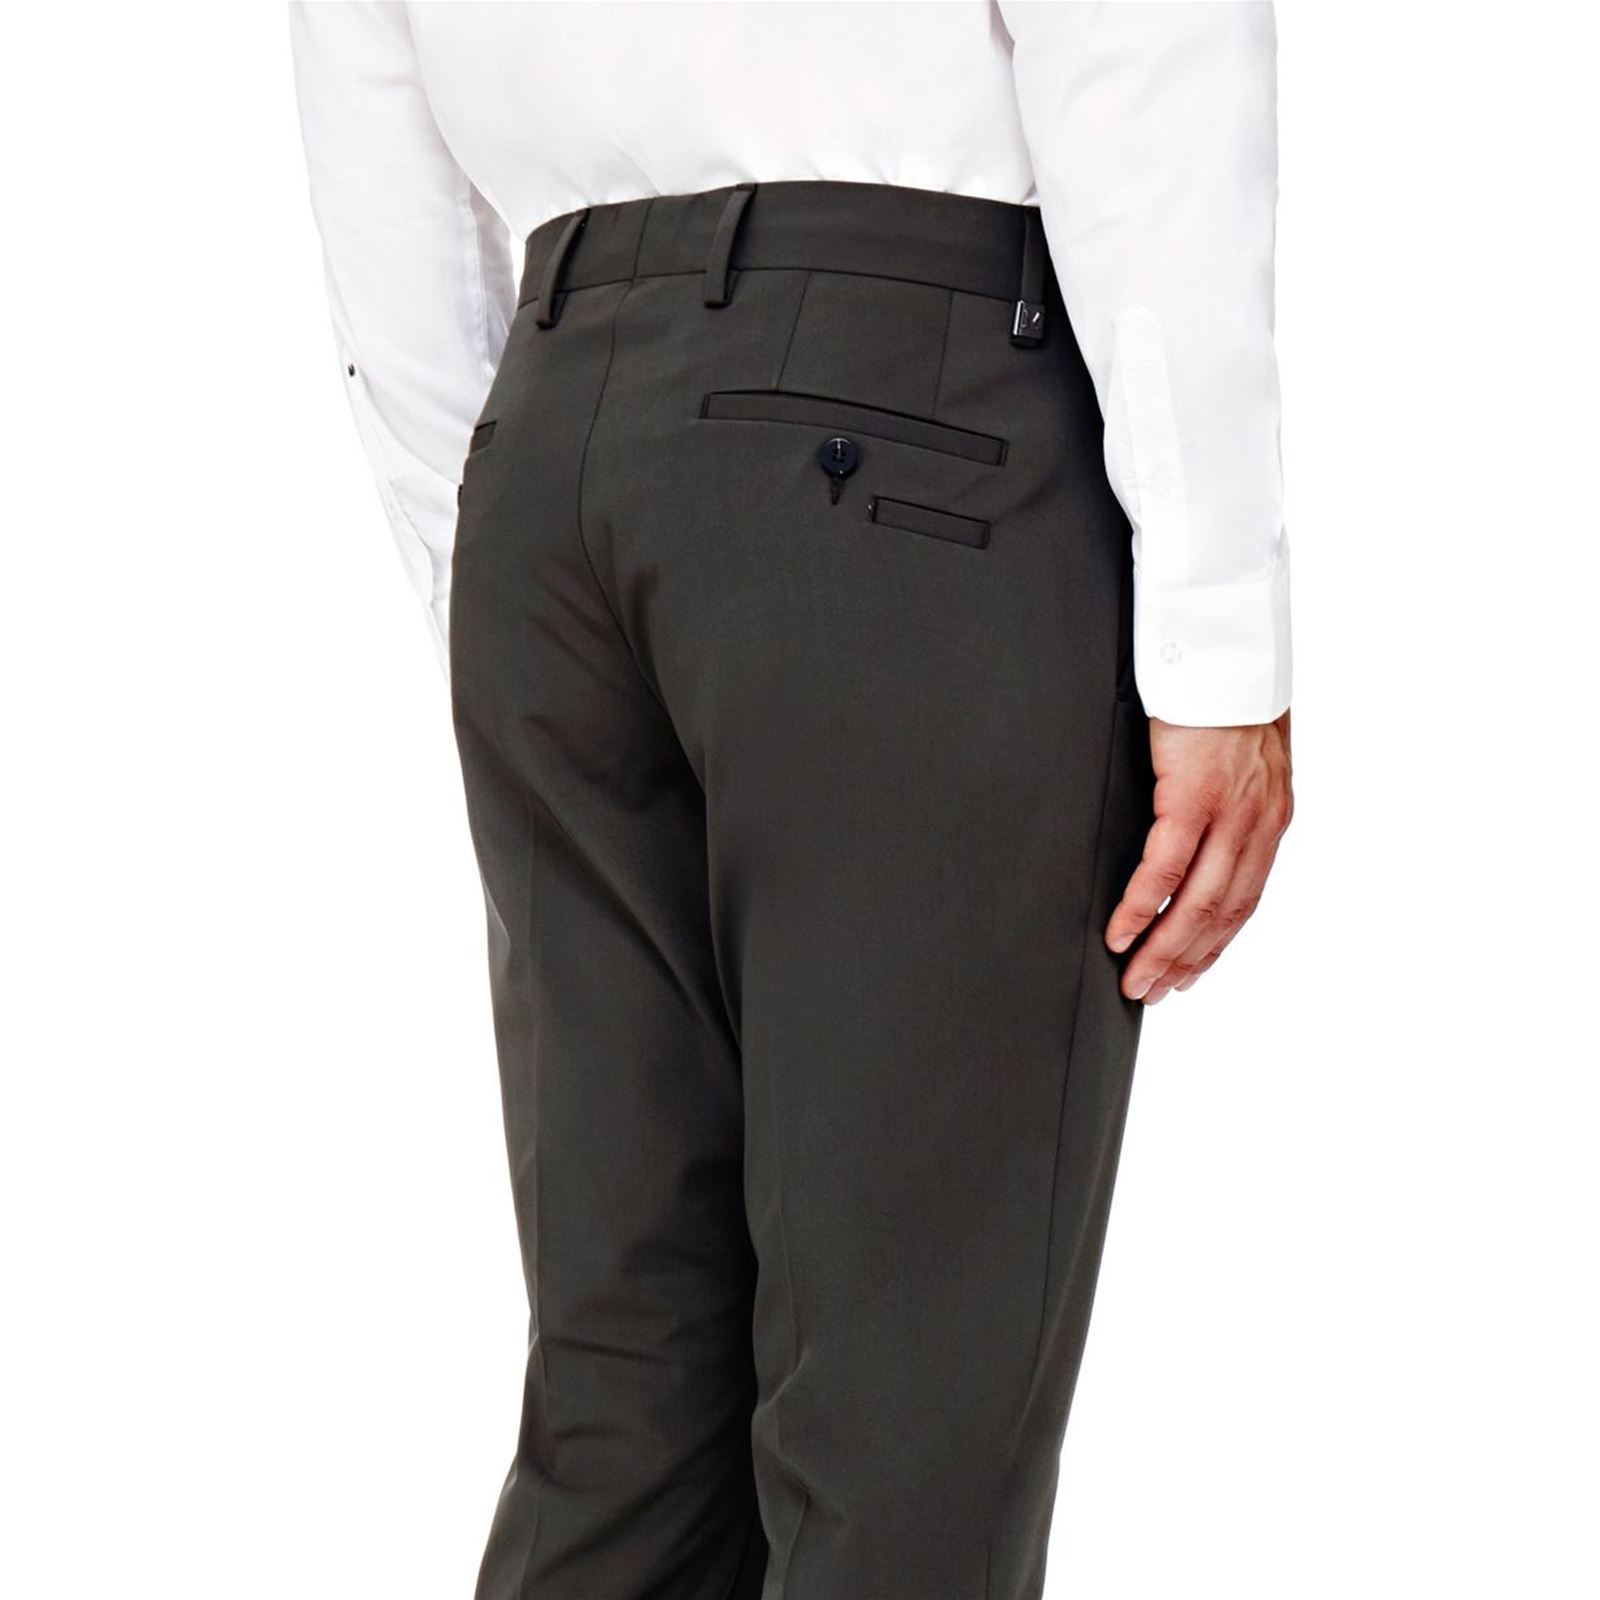 Los Pantalon TailleurGris Homme V Marciano Angeles ZwkOuPTlXi